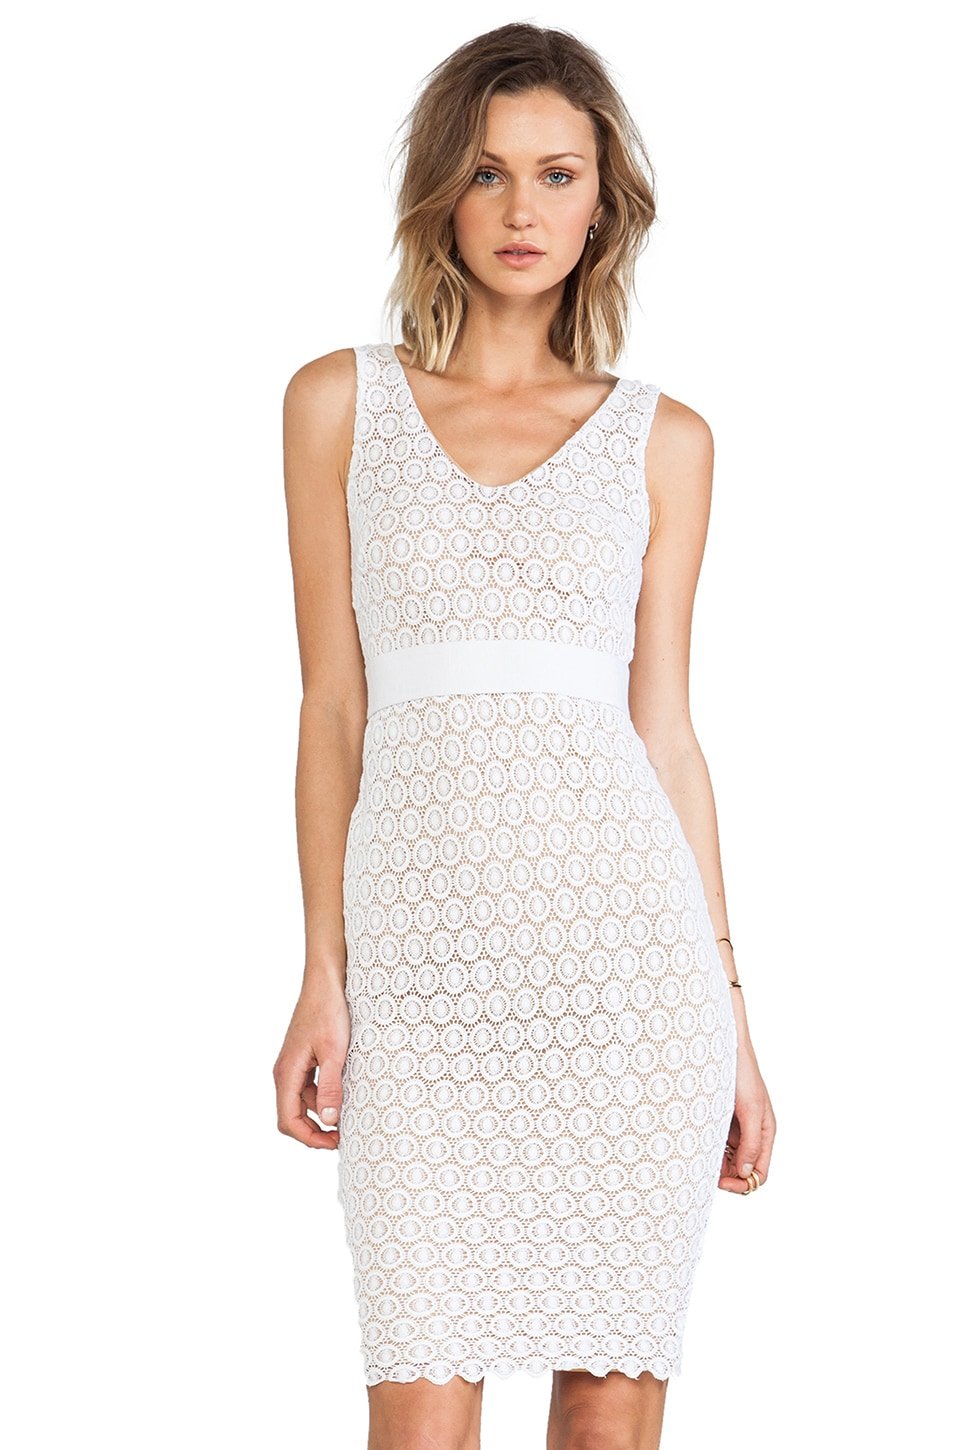 Bailey 44 Tippi Dress in White